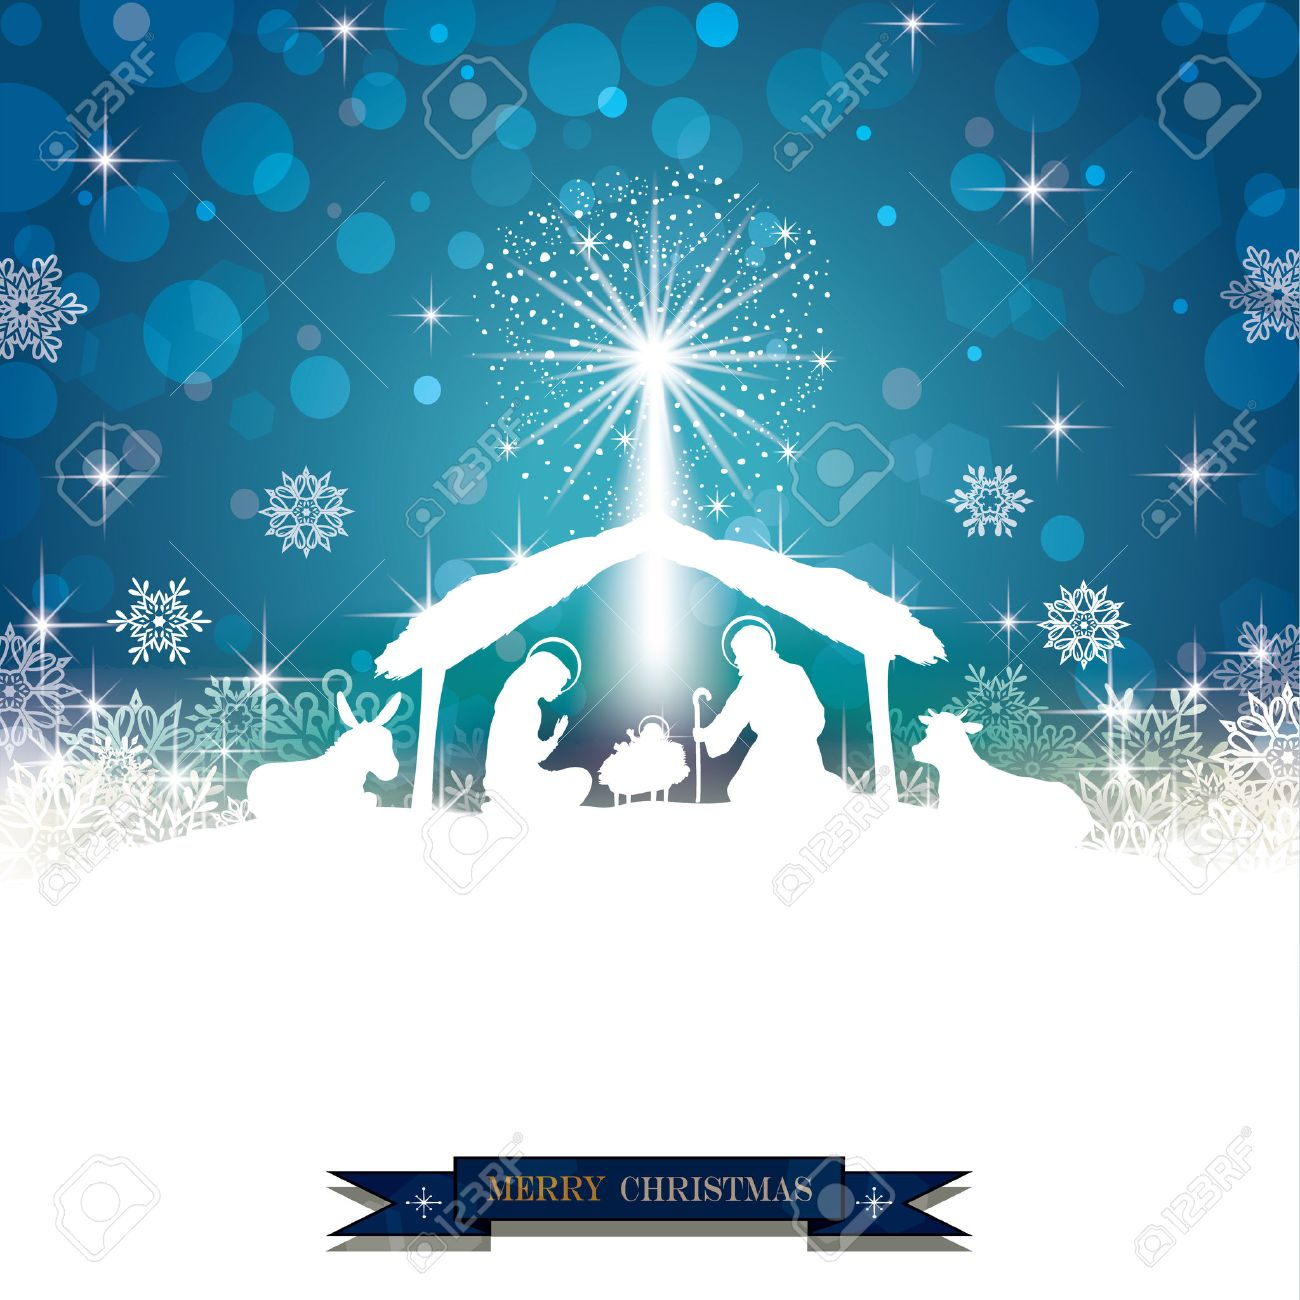 Nativity silhouette White on a Blue Background with Snowflakes-Transparency blending effects and gradient mesh-EPS 10 - 48423802